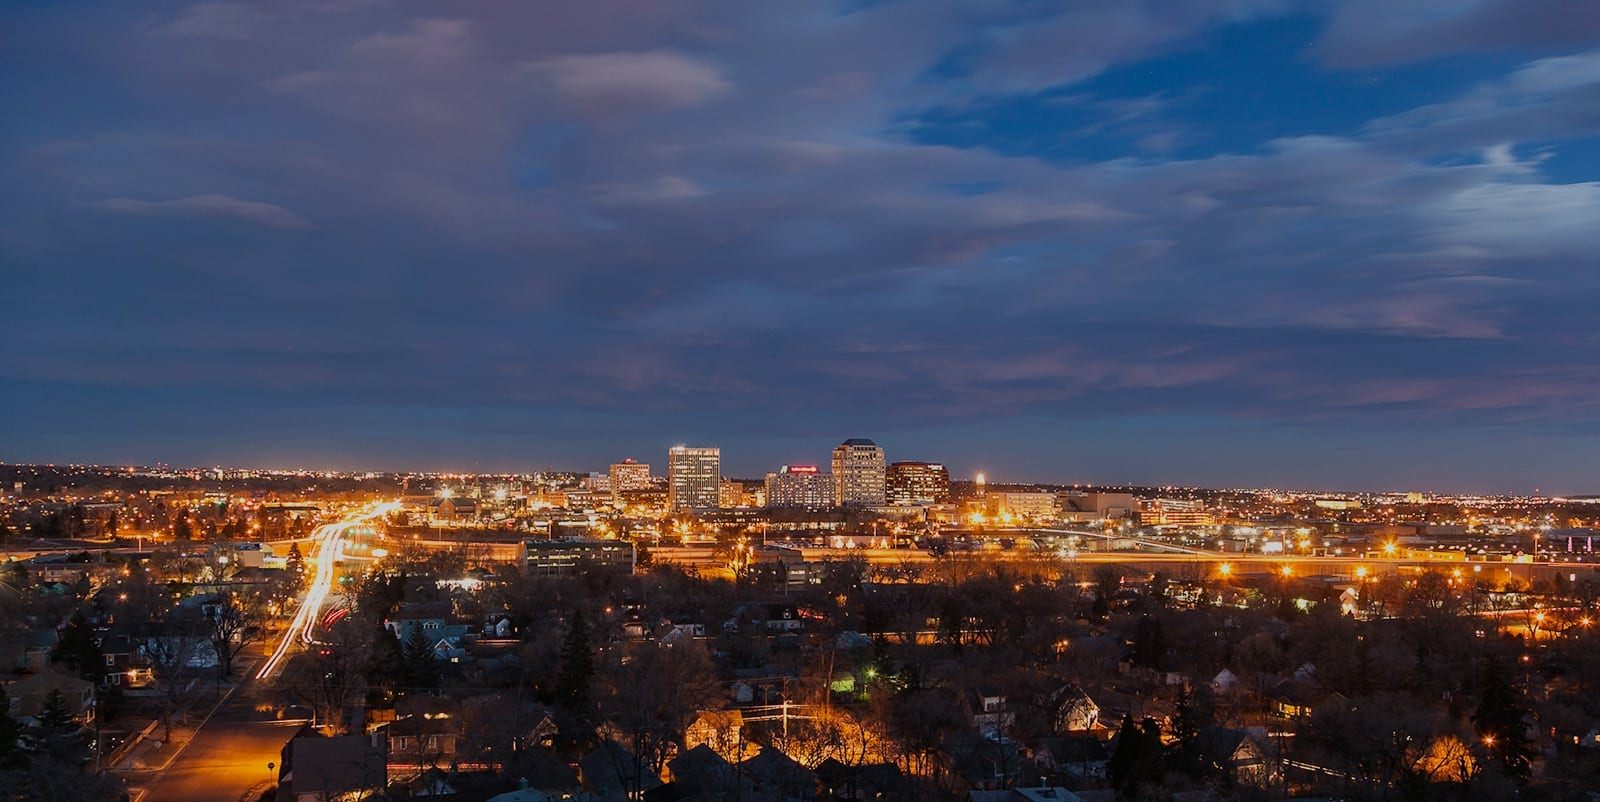 View of Colorado Springs at night